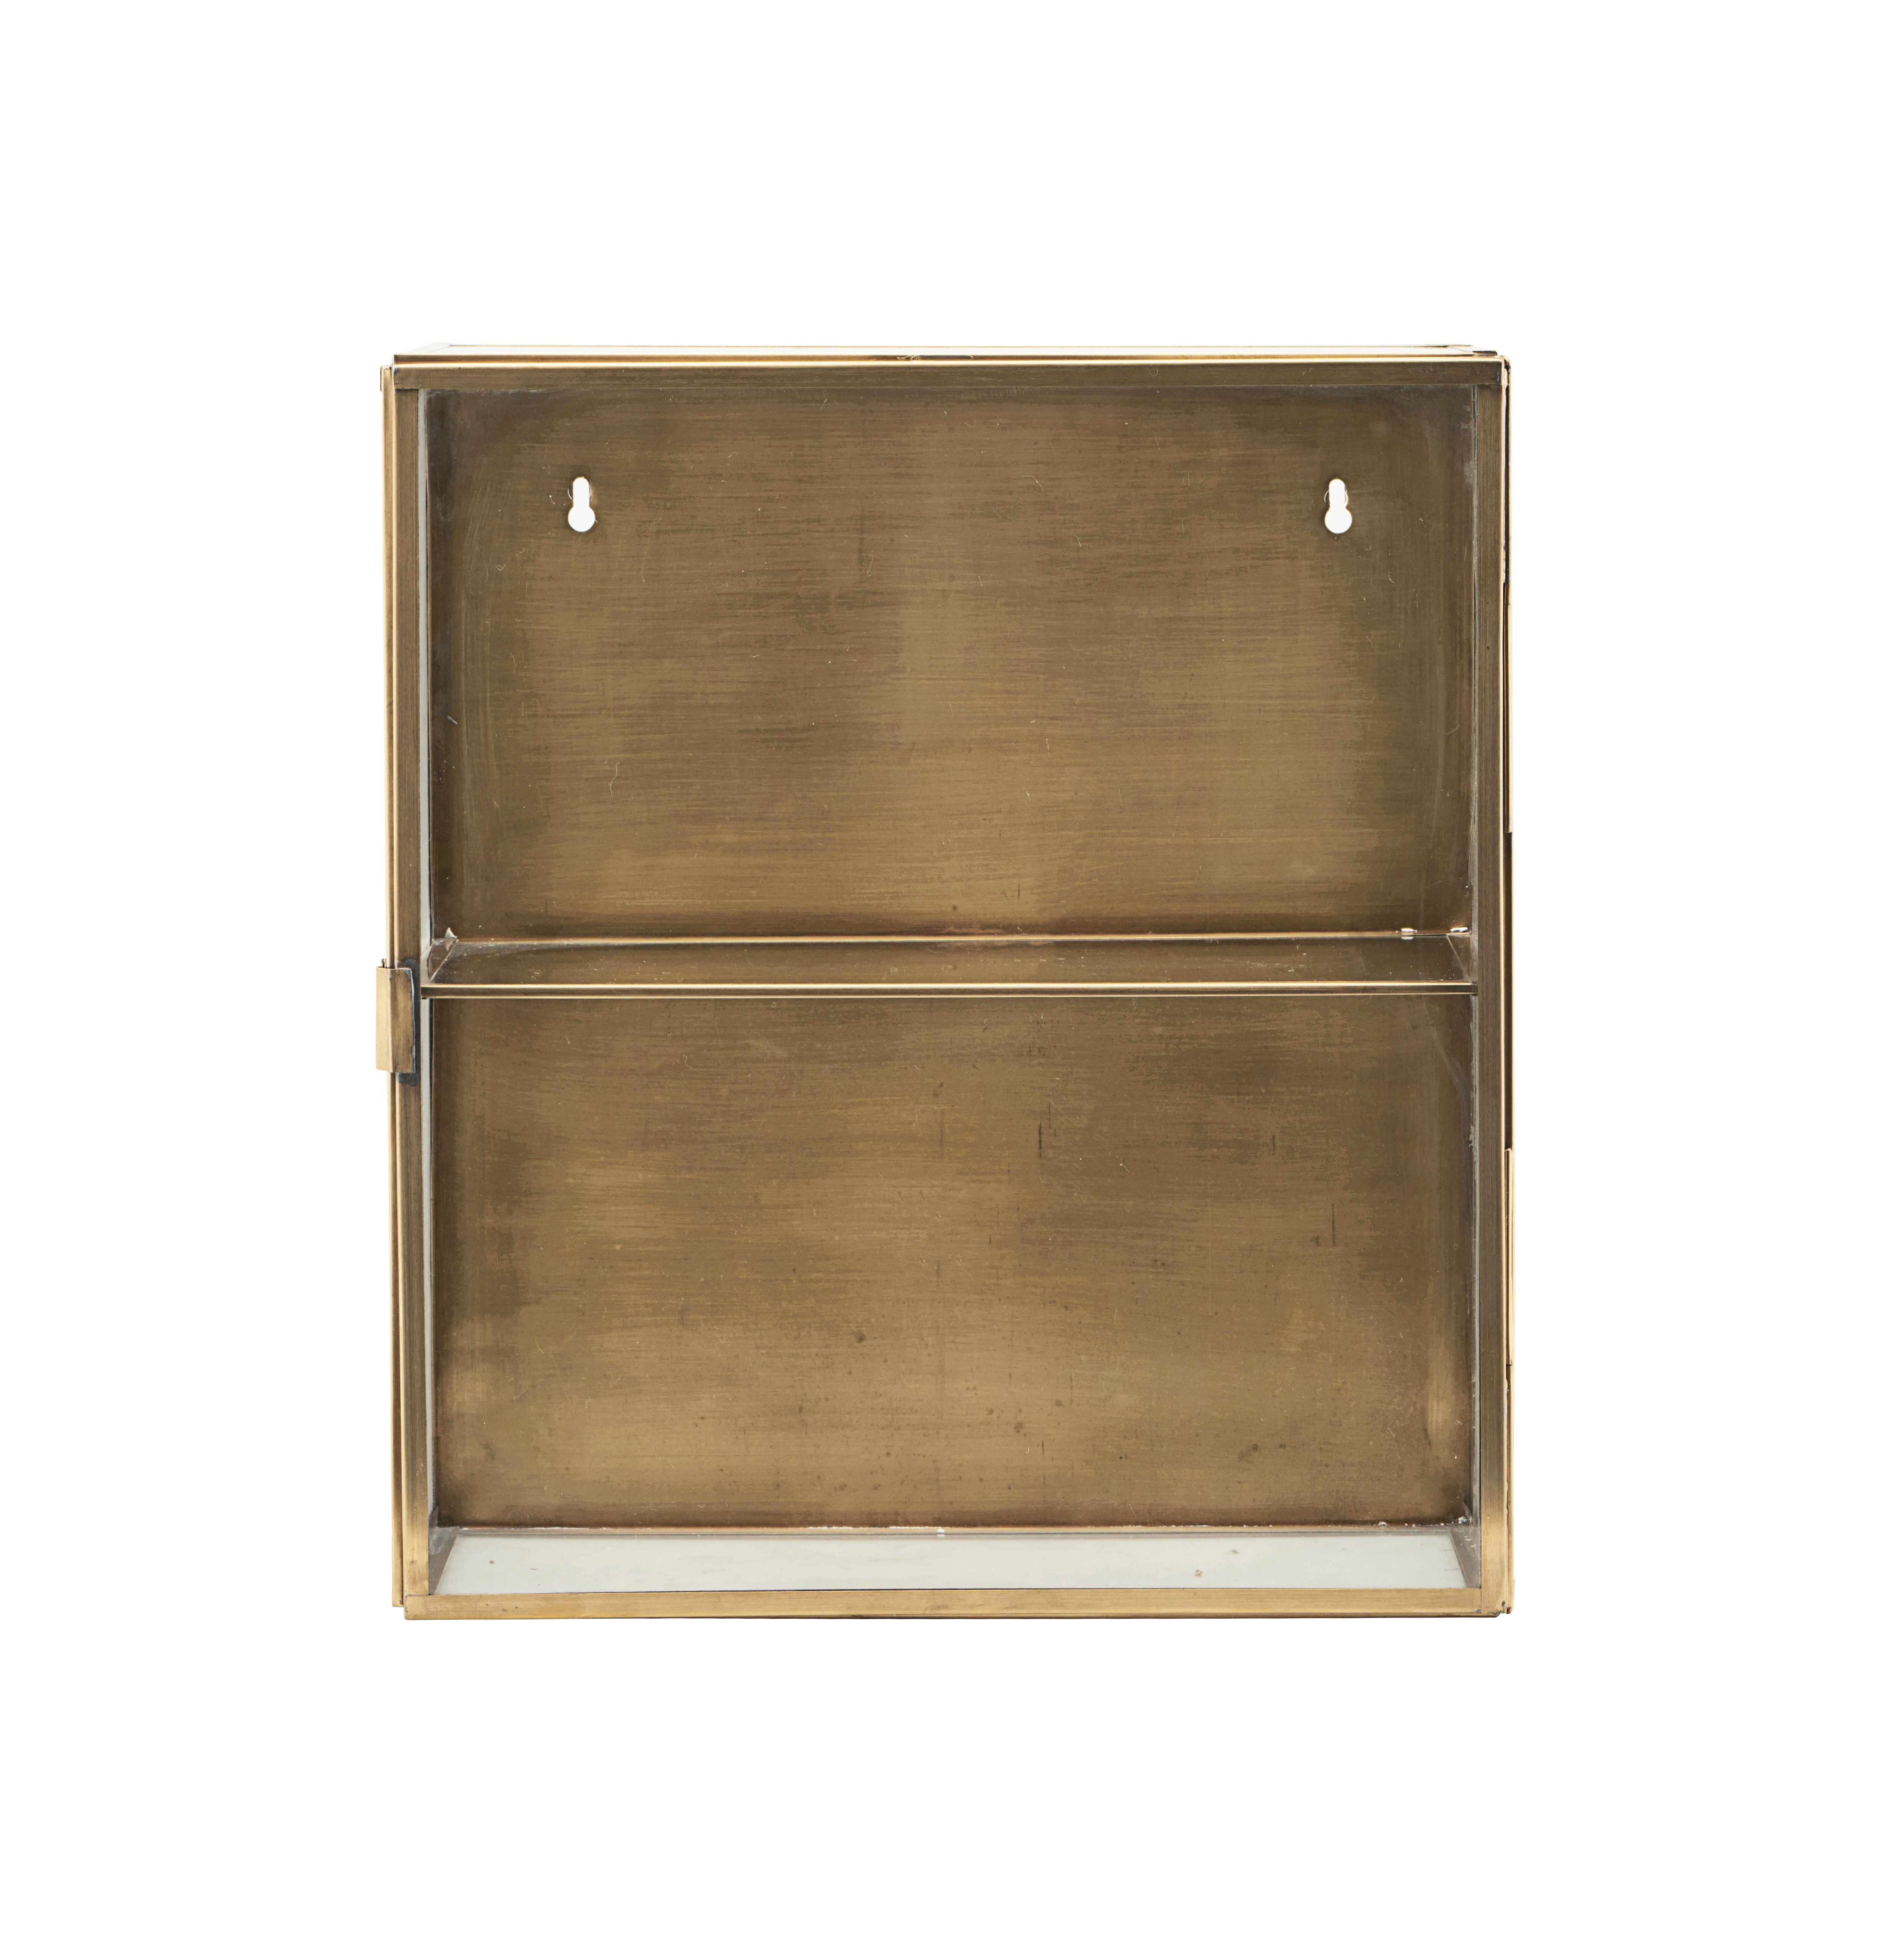 cabinet small wall storage showcase l 35 x h 40 cm